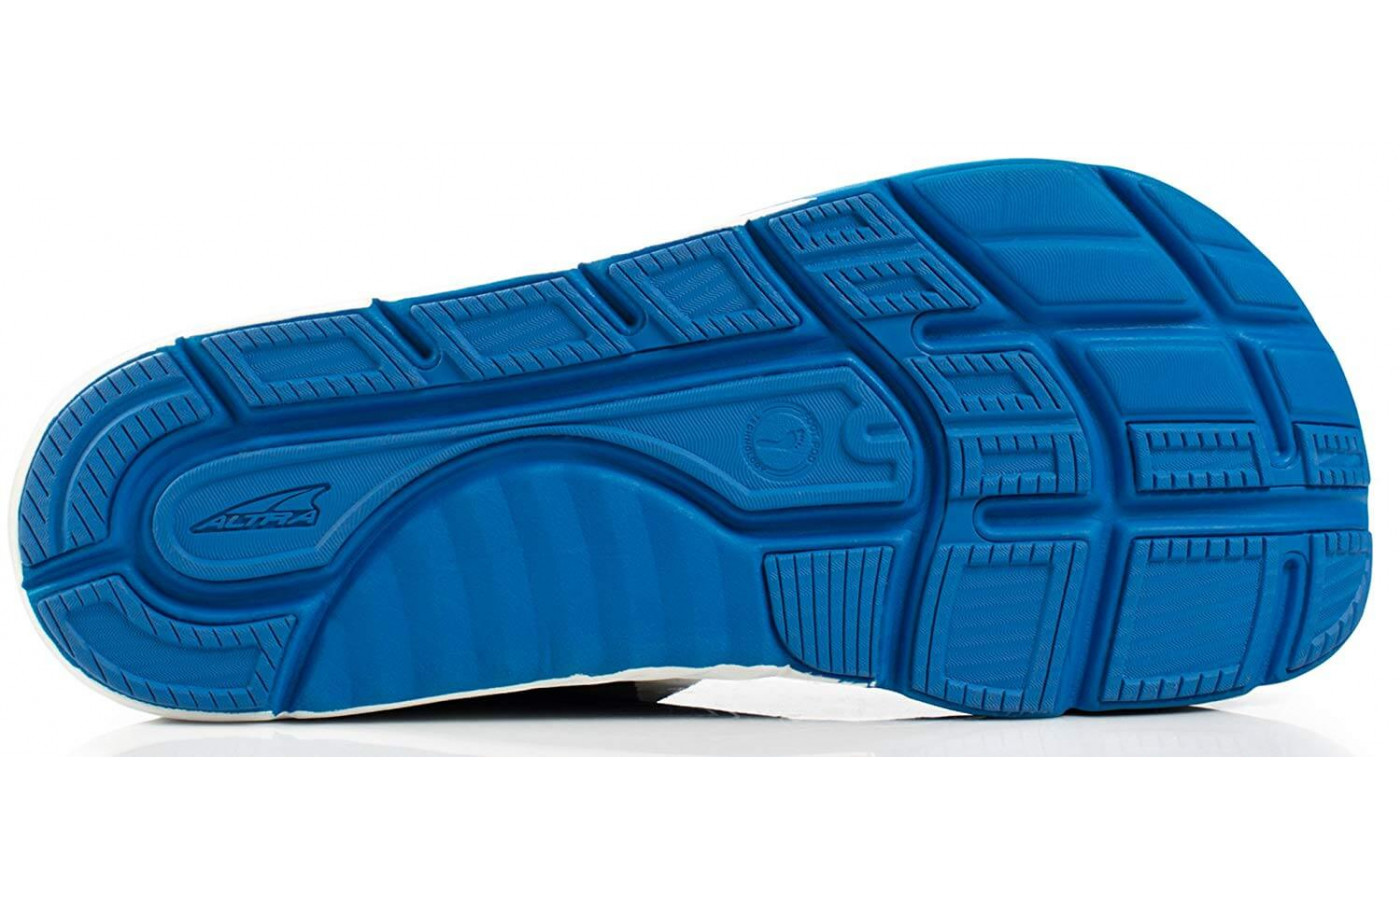 The Altra Torin 3.5 sole